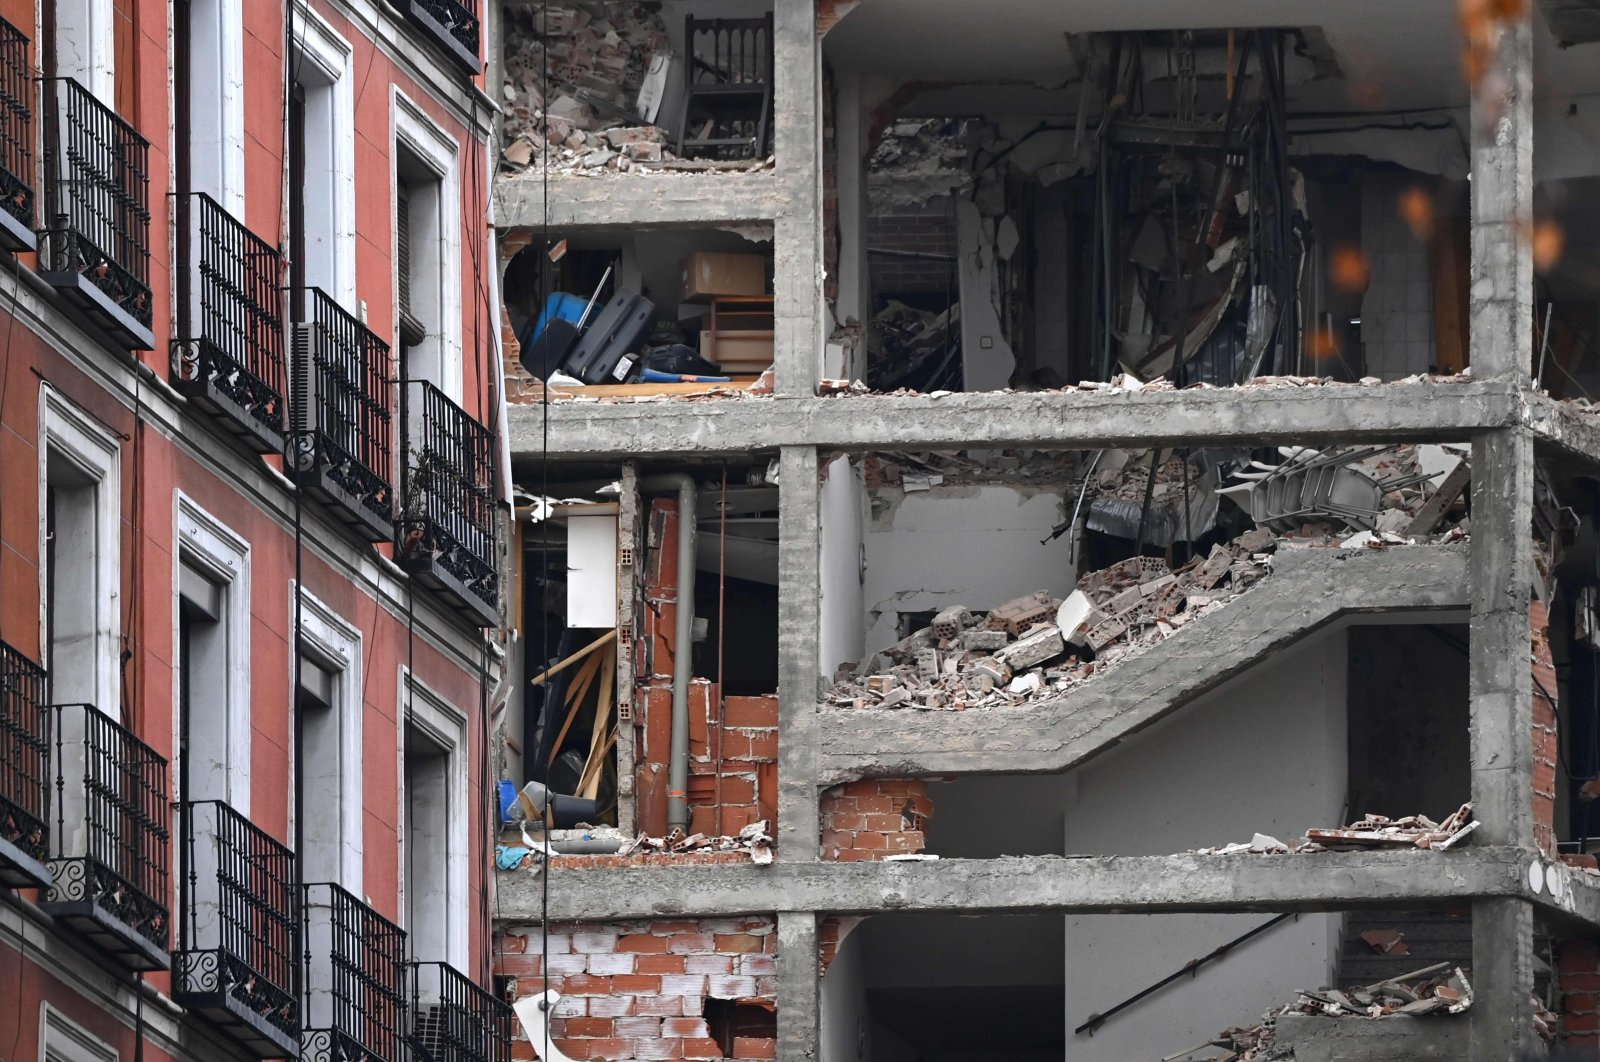 A damaged building is pictured in Madrid on January 20, 2021 after a strong explosion rocked the building. (AFP Photo)